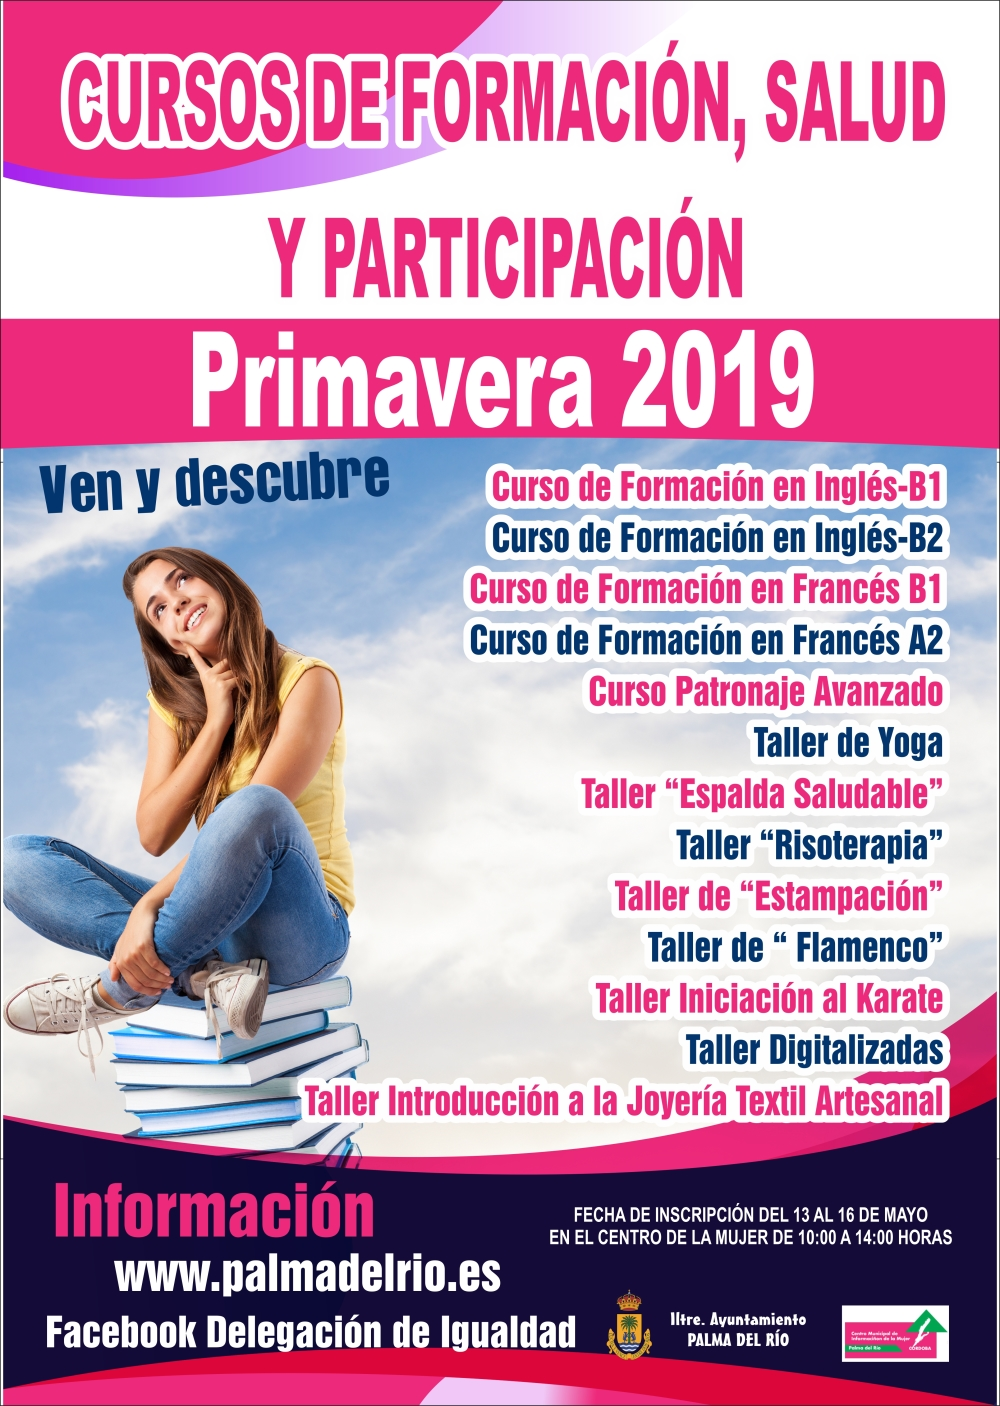 https://www.palmadelrio.es/sites/default/files/cvurso_mujer_2019_primavera.jpg